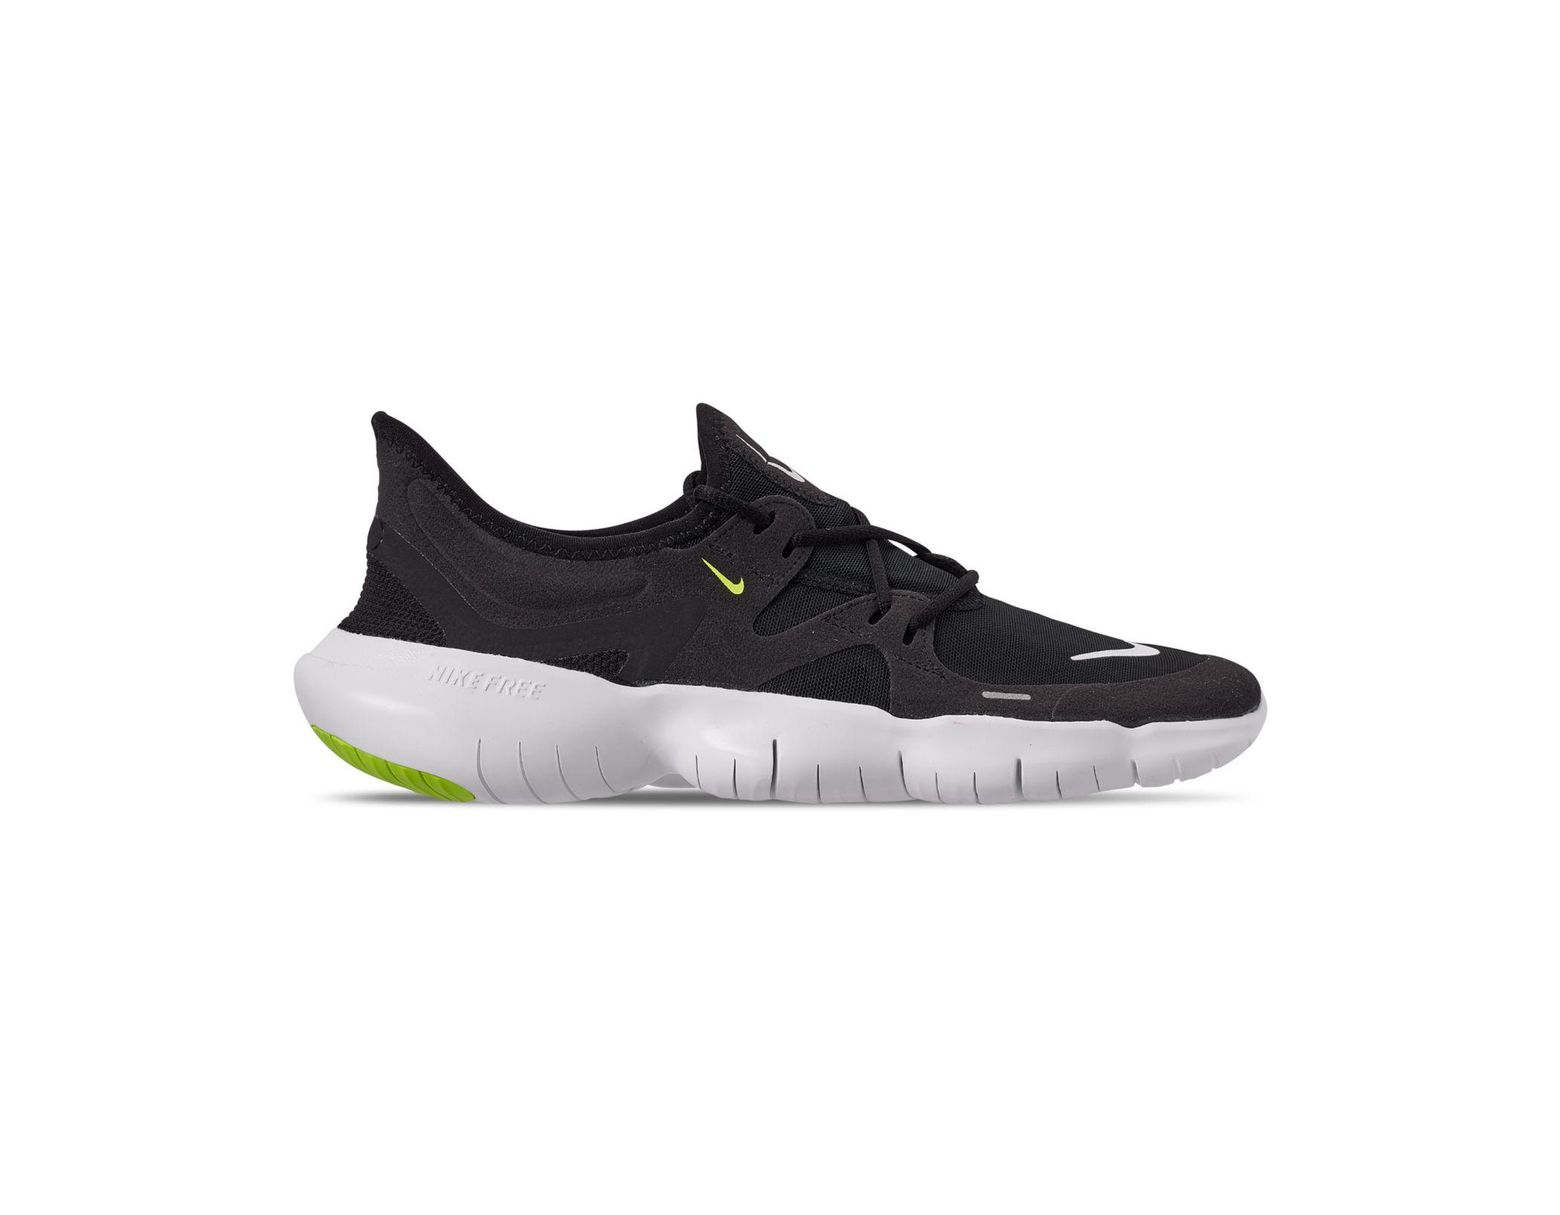 quality design 8e370 b628d Nike Free Rn 5.0 Running Sneakers From Finish Line in Black for Men - Lyst